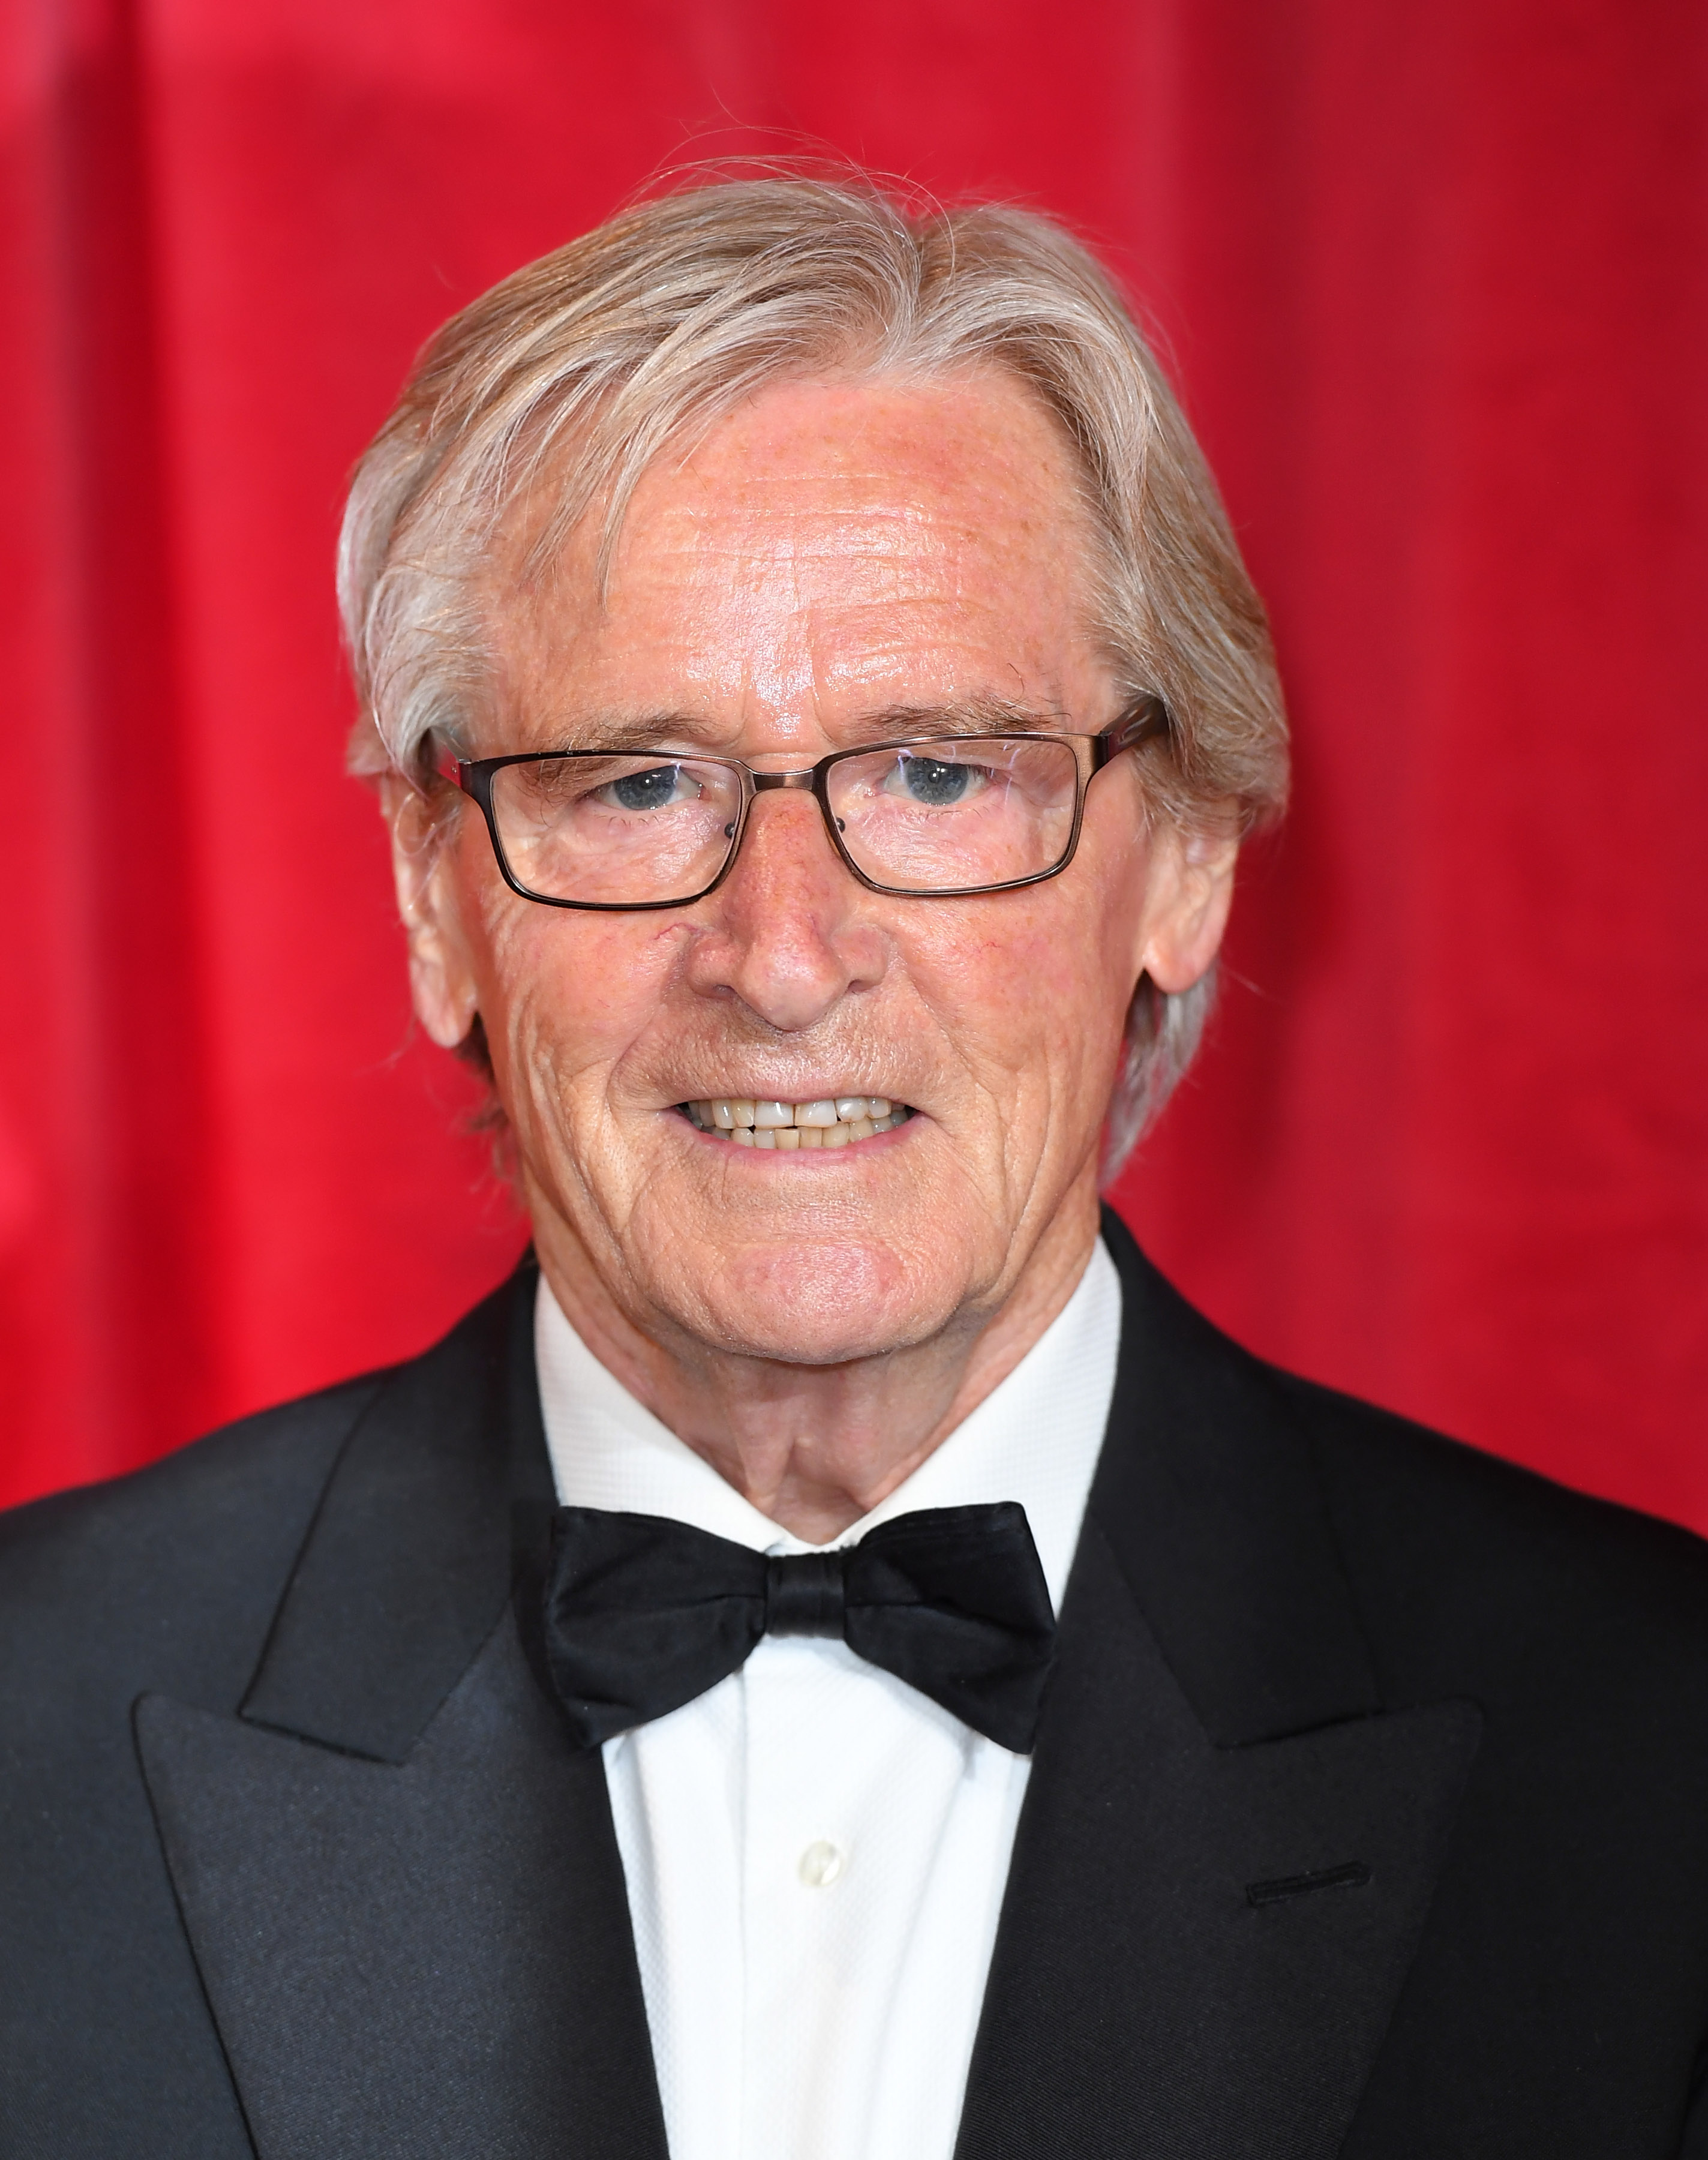 MANCHESTER, ENGLAND - JUNE 03:  William Roache attends the British Soap Awards at The Lowry Theatre on June 3, 2017 in Manchester, England.  (Photo by Karwai Tang/WireImage)  Getty, TL